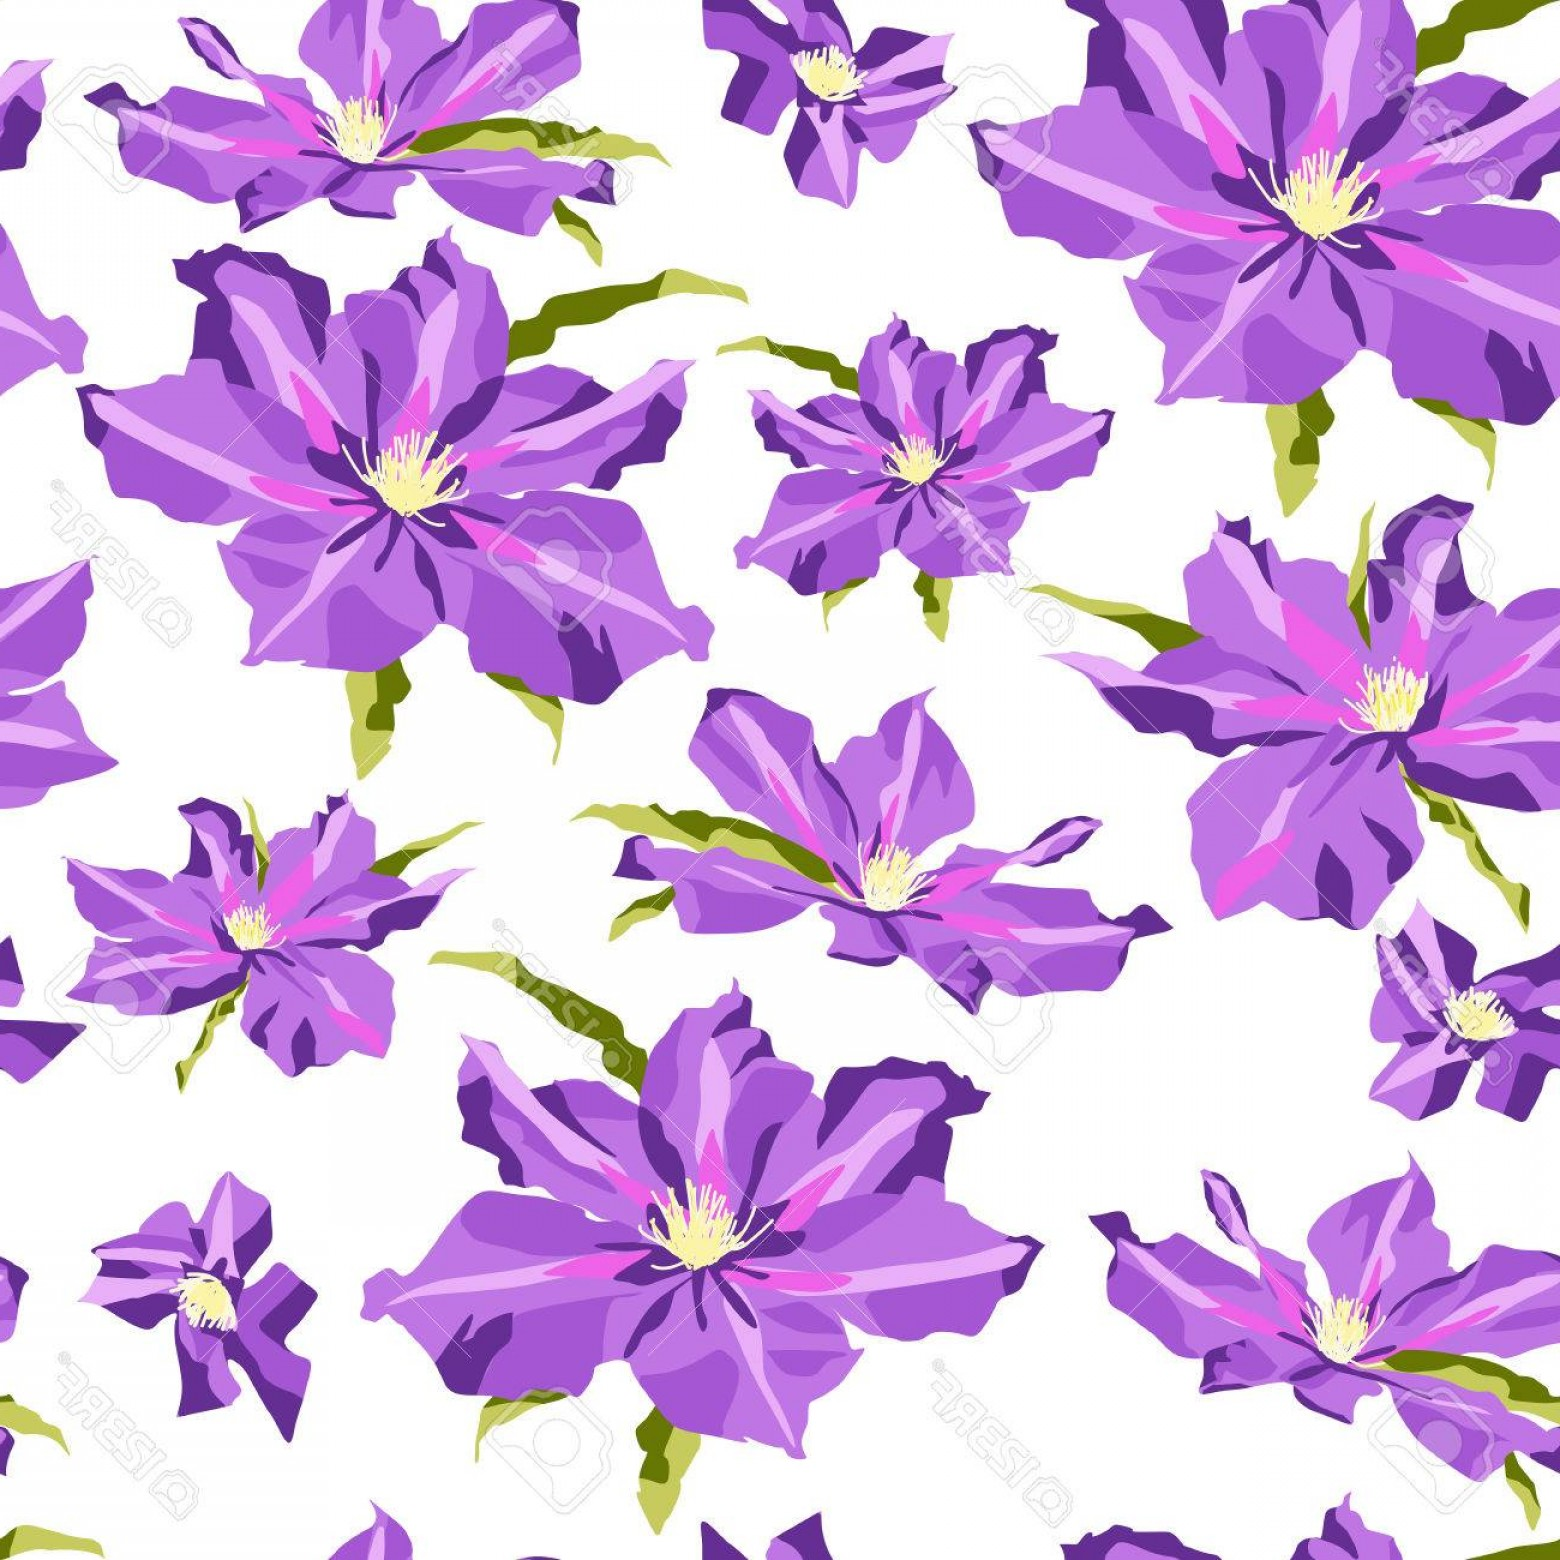 Lilac Vector Drawing: Photostock Vector Lilac Clematis Flowers On White Background Freehand Drawing Seamless Pattern